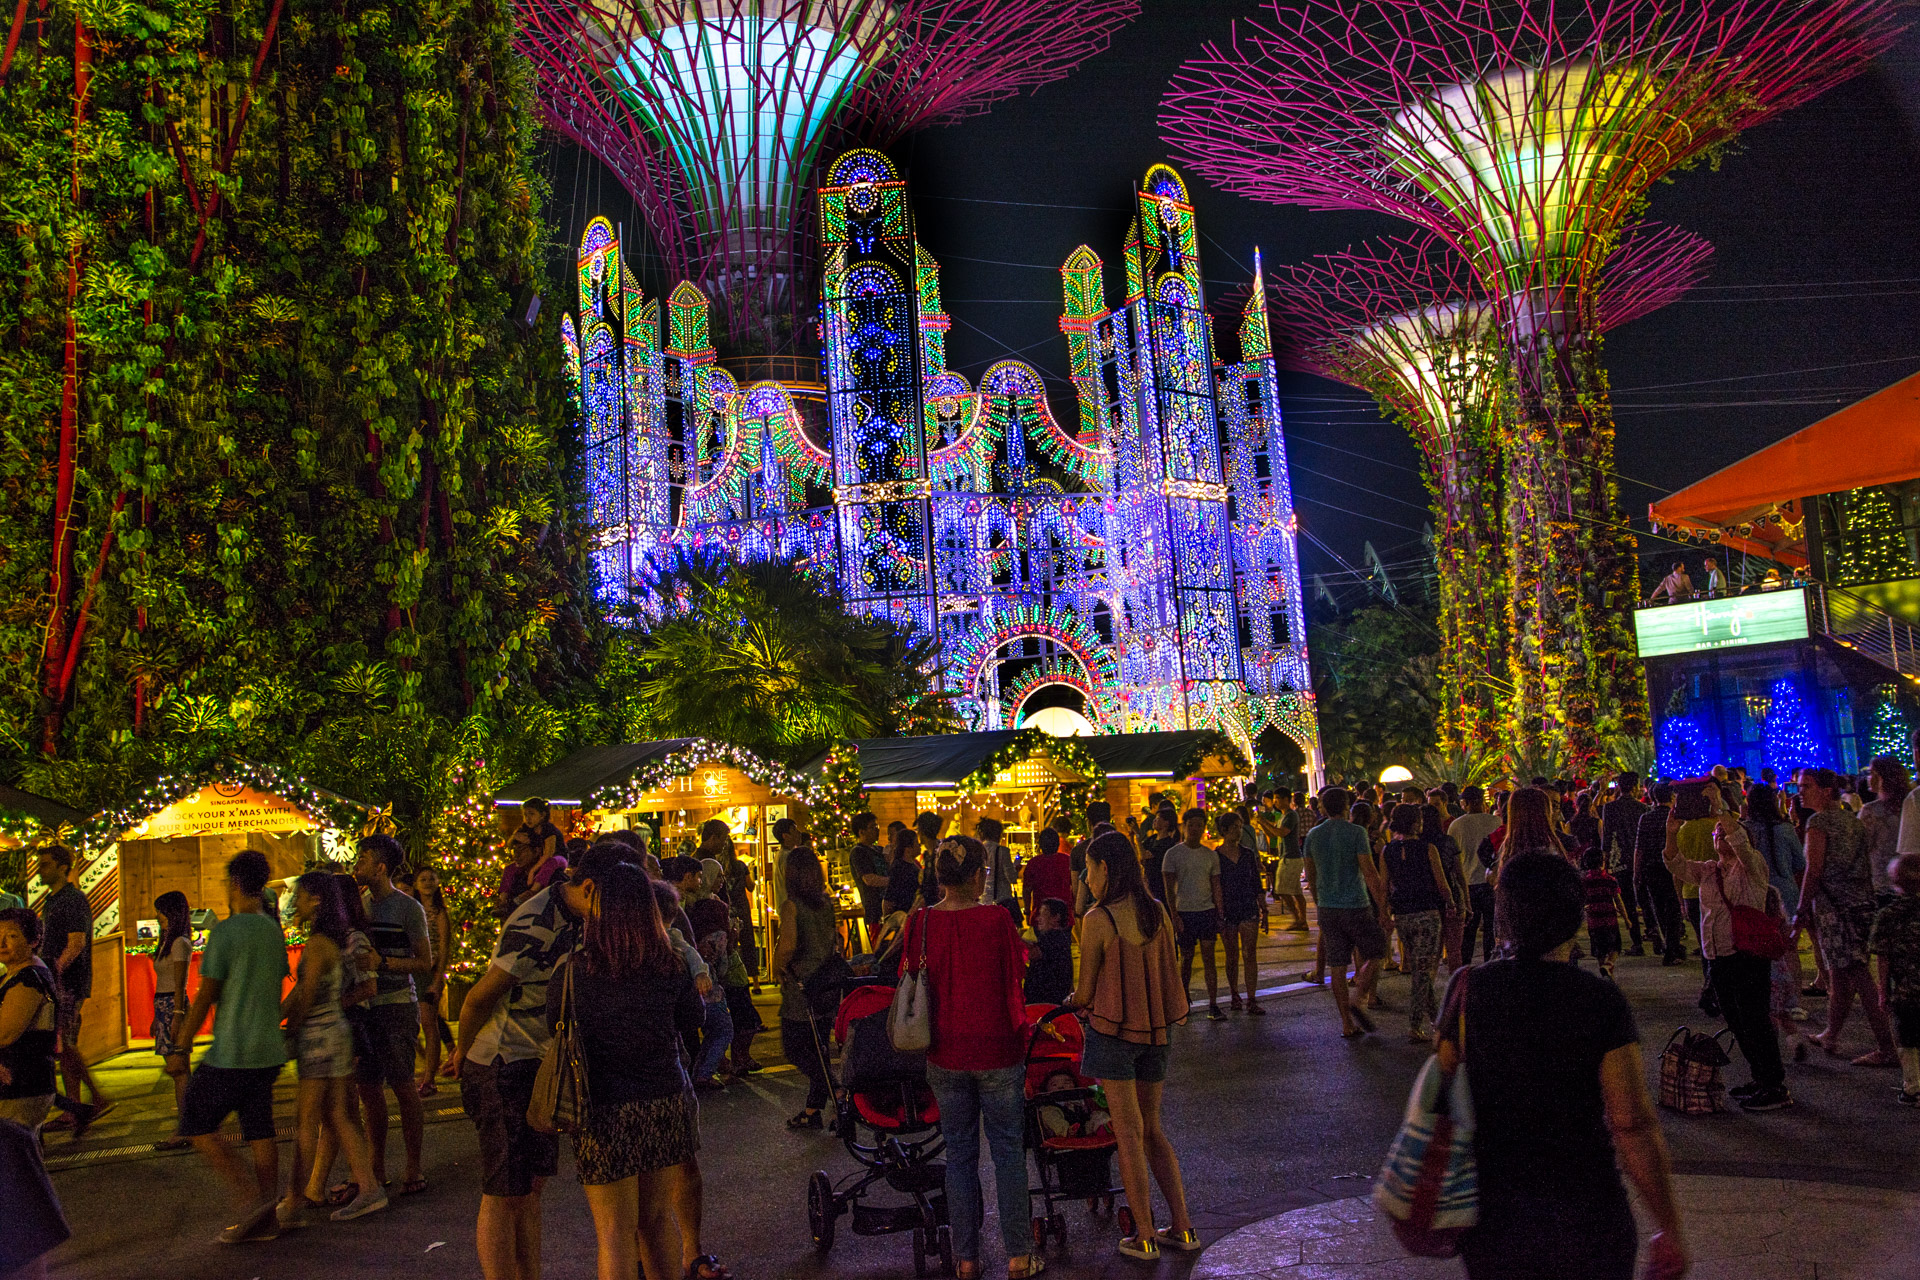 christmas wonderland at gardens by the bay mini photo essay unlike the two previous editions of christmas wonderland this year s edition charges an entrance fee ranging from 4 to 8 call it human psychology